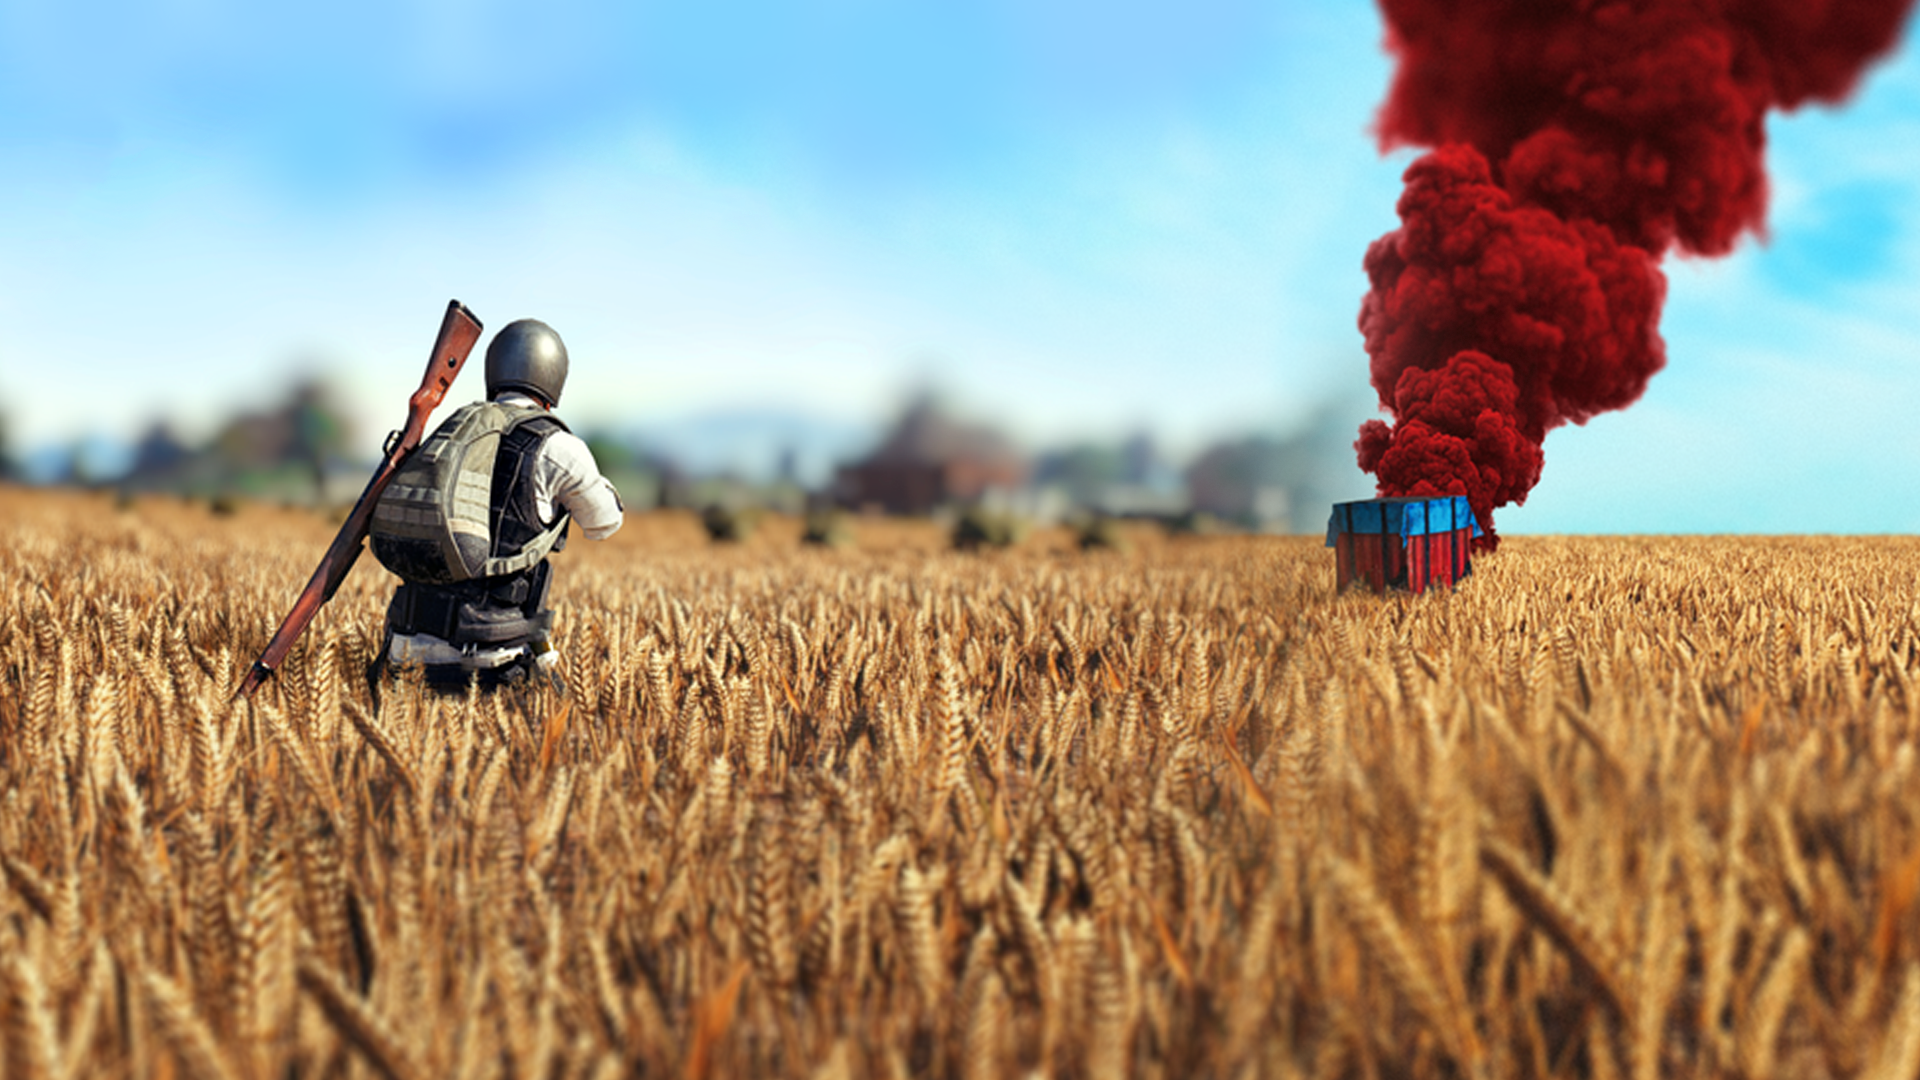 Pubg HD Wallpaper